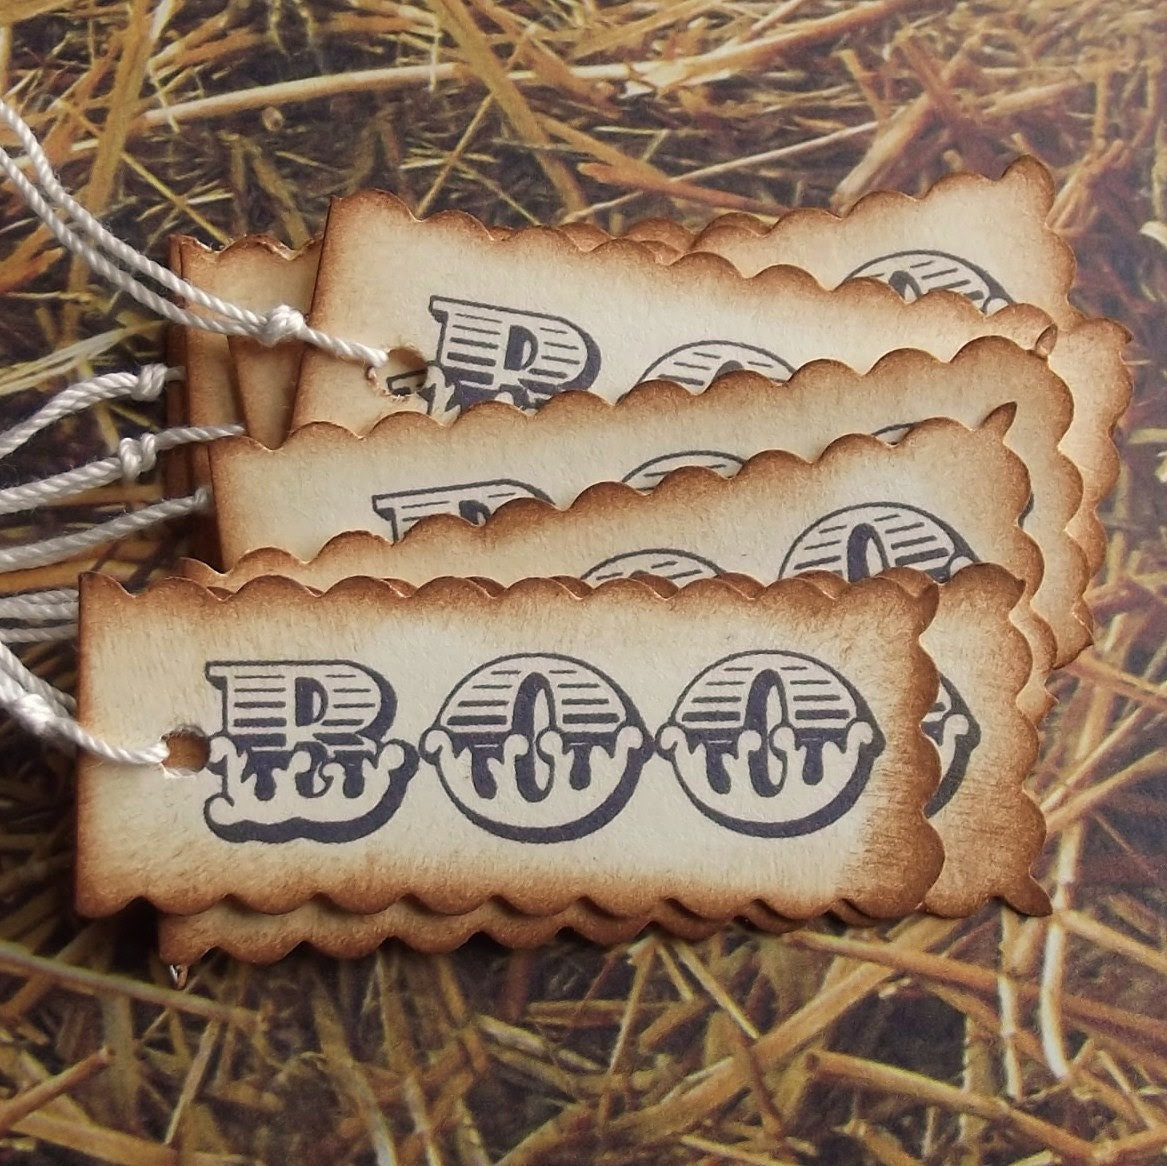 BOO Halloween Tags - Vintage Inspired, Hand Aging, Scalloped Edges